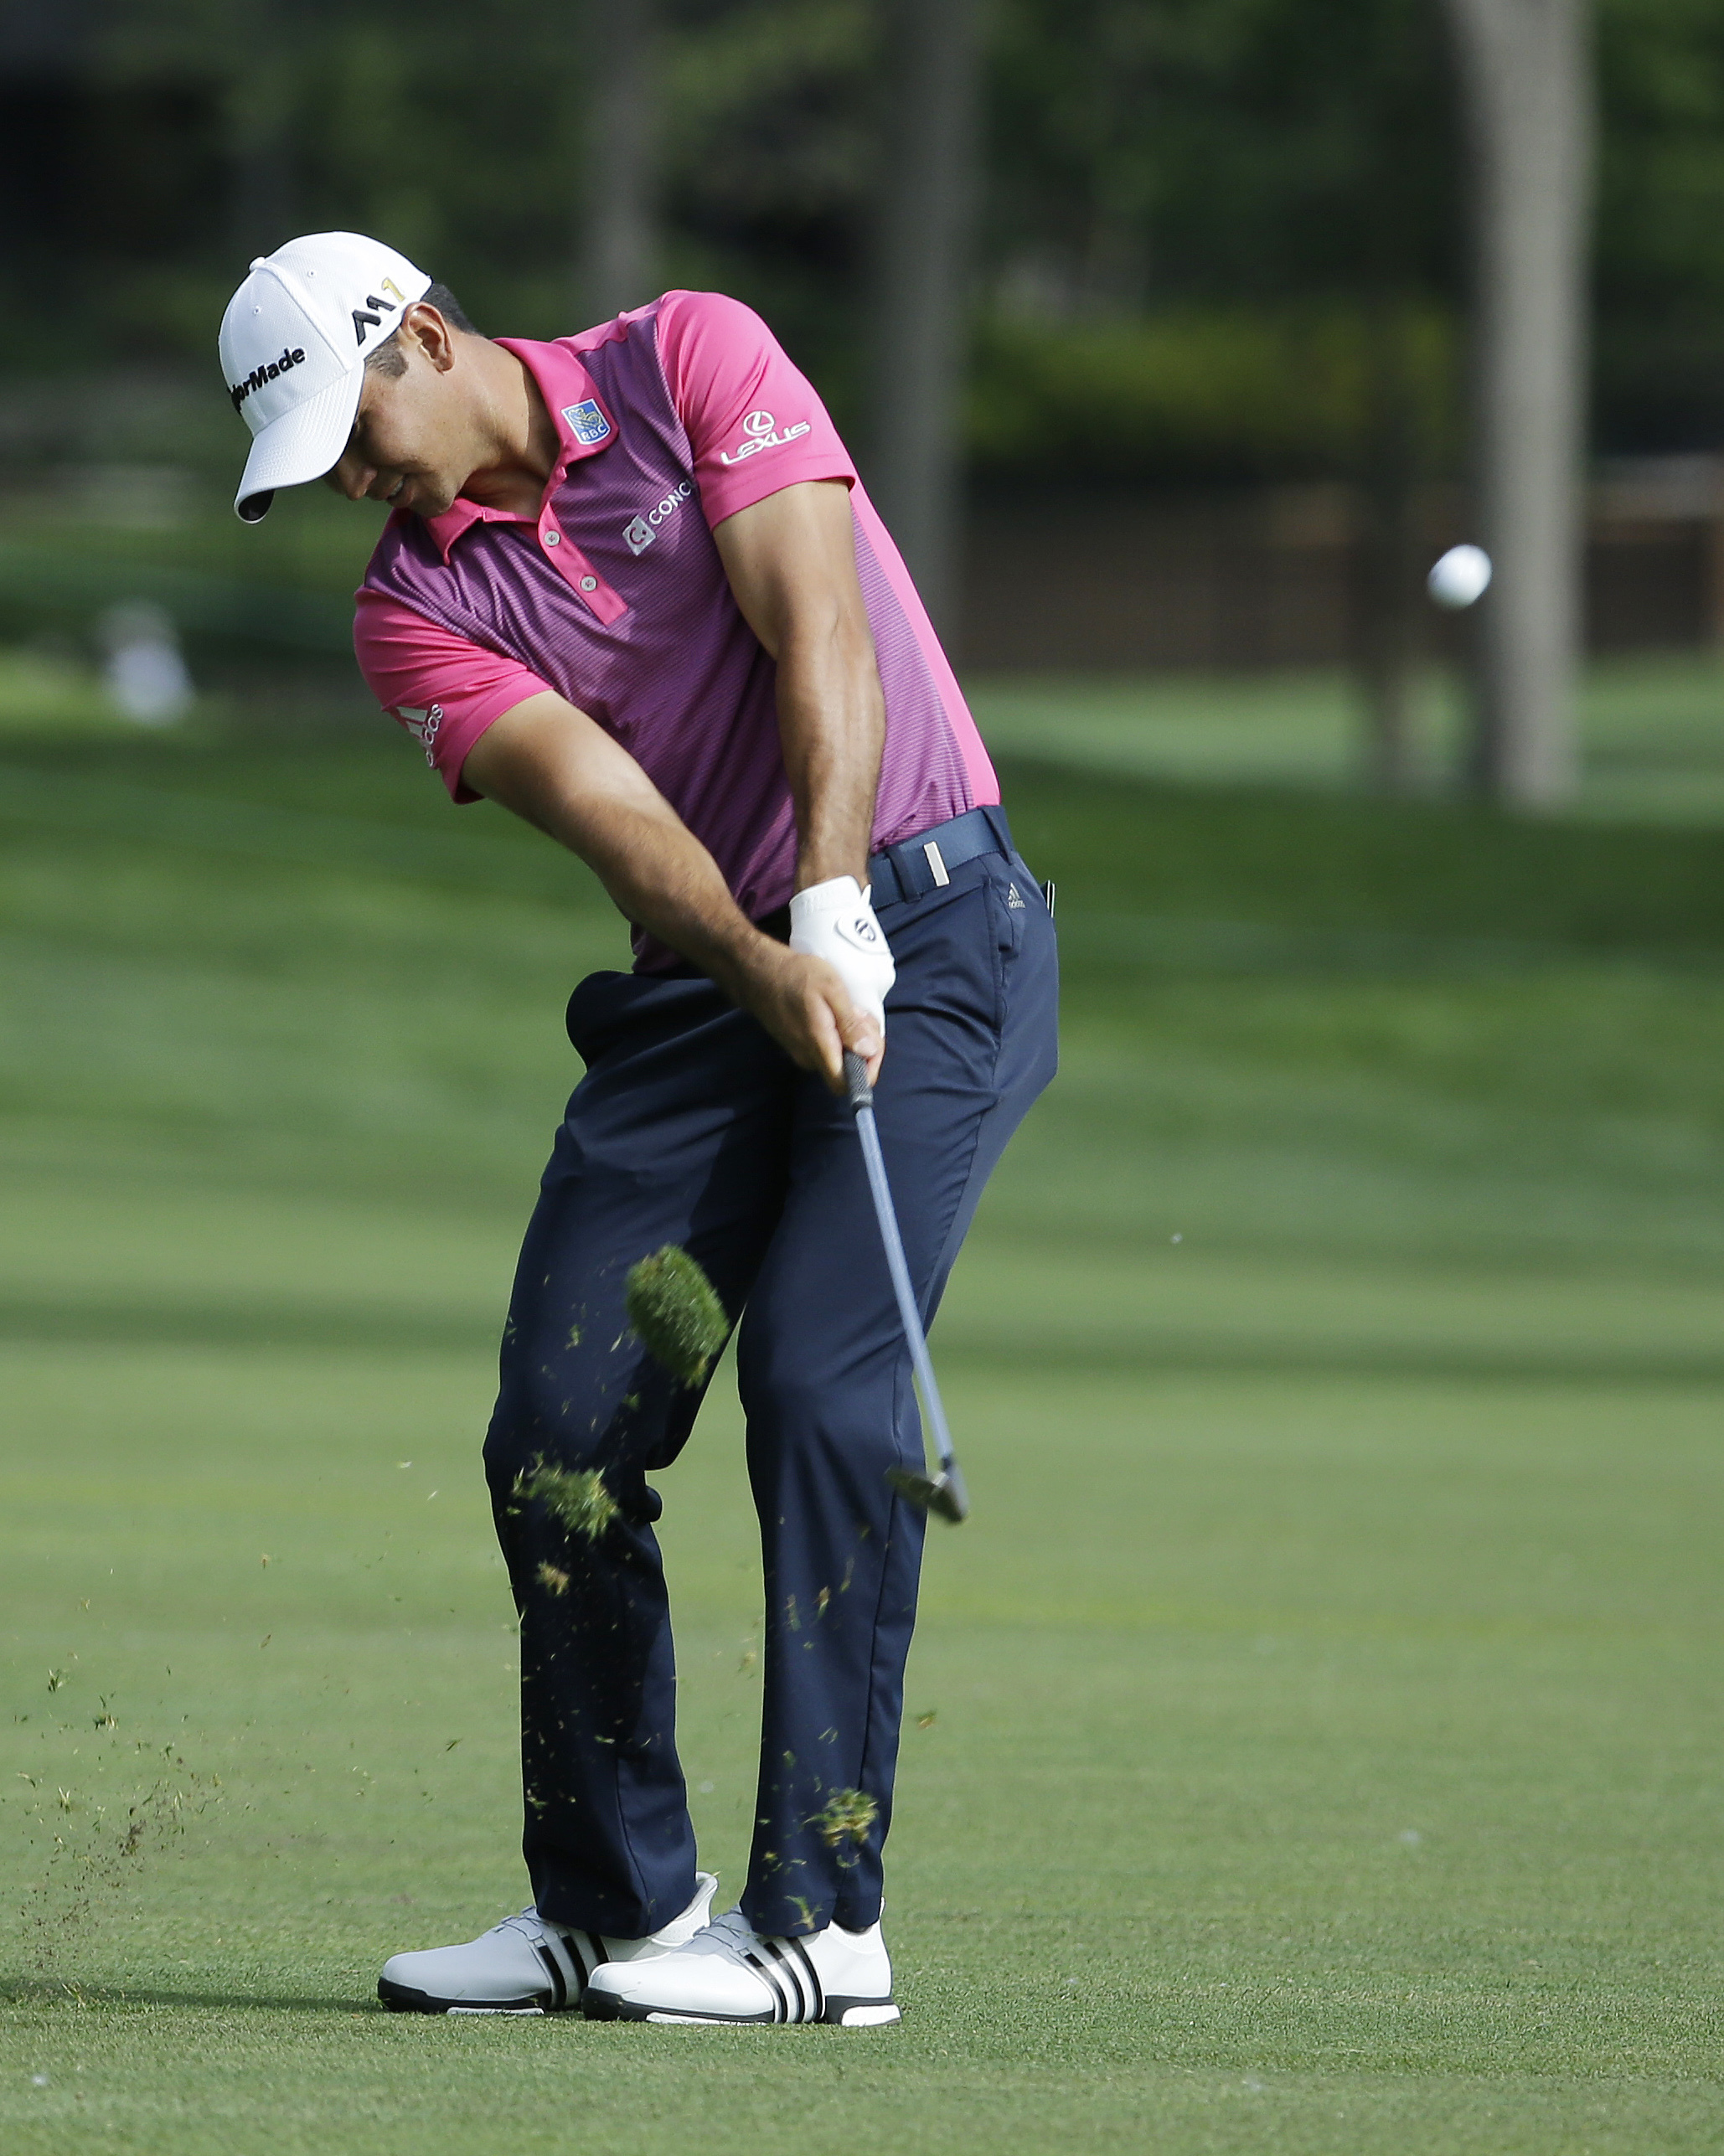 Jason Day, of Australia, hits on the 14th hole during the second round of the Memorial golf tournament, Friday, June 3, 2016, in Dublin, Ohio. (AP Photo/Darron Cummings)